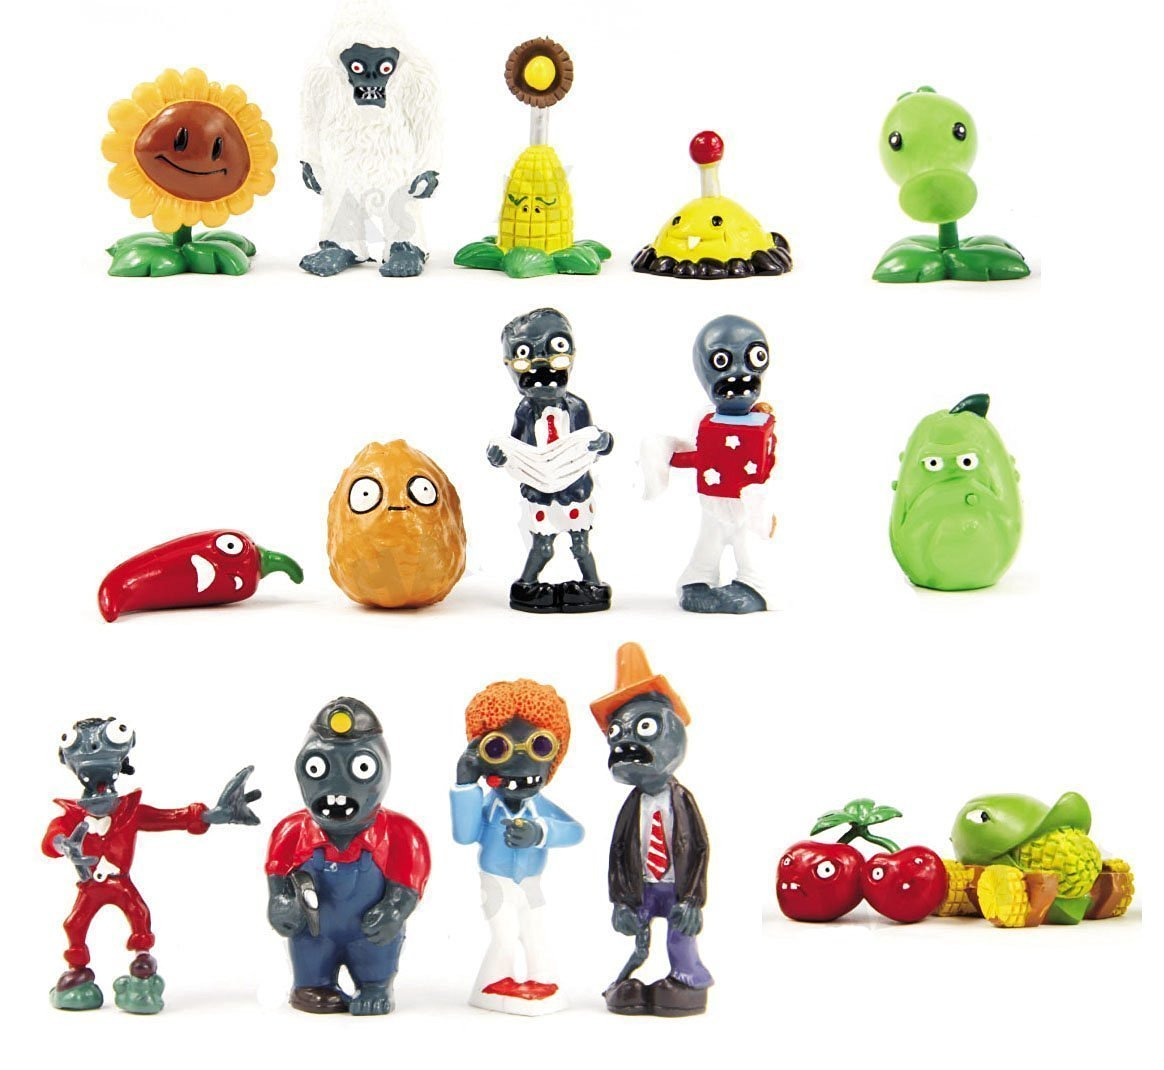 Oliasports 16 X Plants vs Zombies Toys Series Game Role Figure Display Toy PVC Gargantuar Craze Dave Dr. Zomboss Action Figure